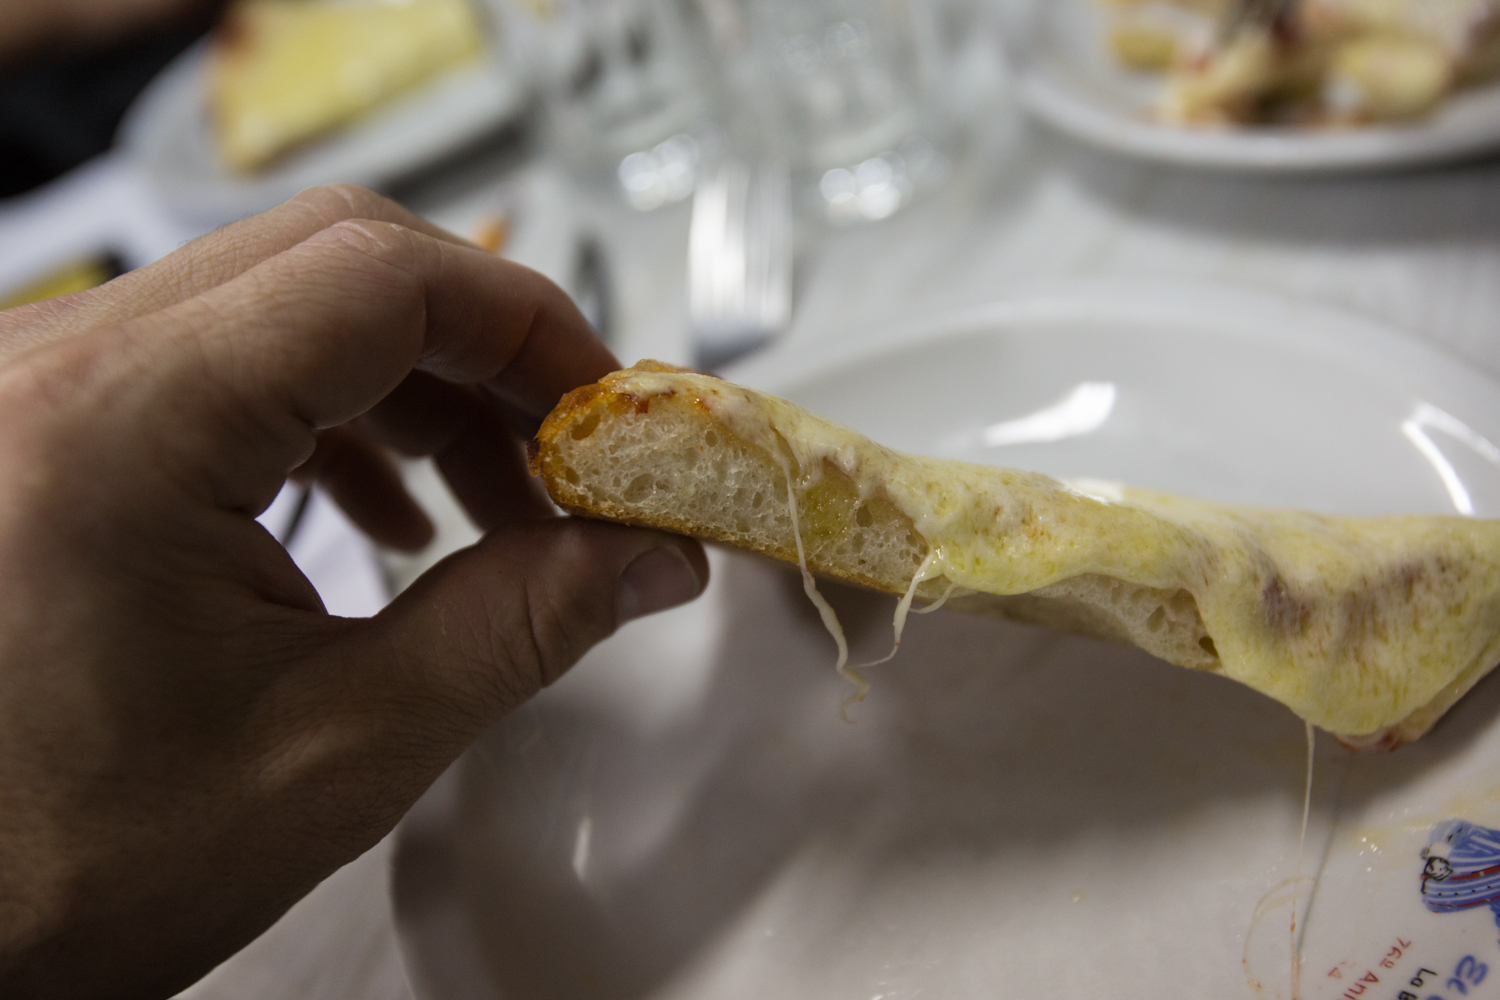 Side view of El Cuartito's soft and crunchy crust.